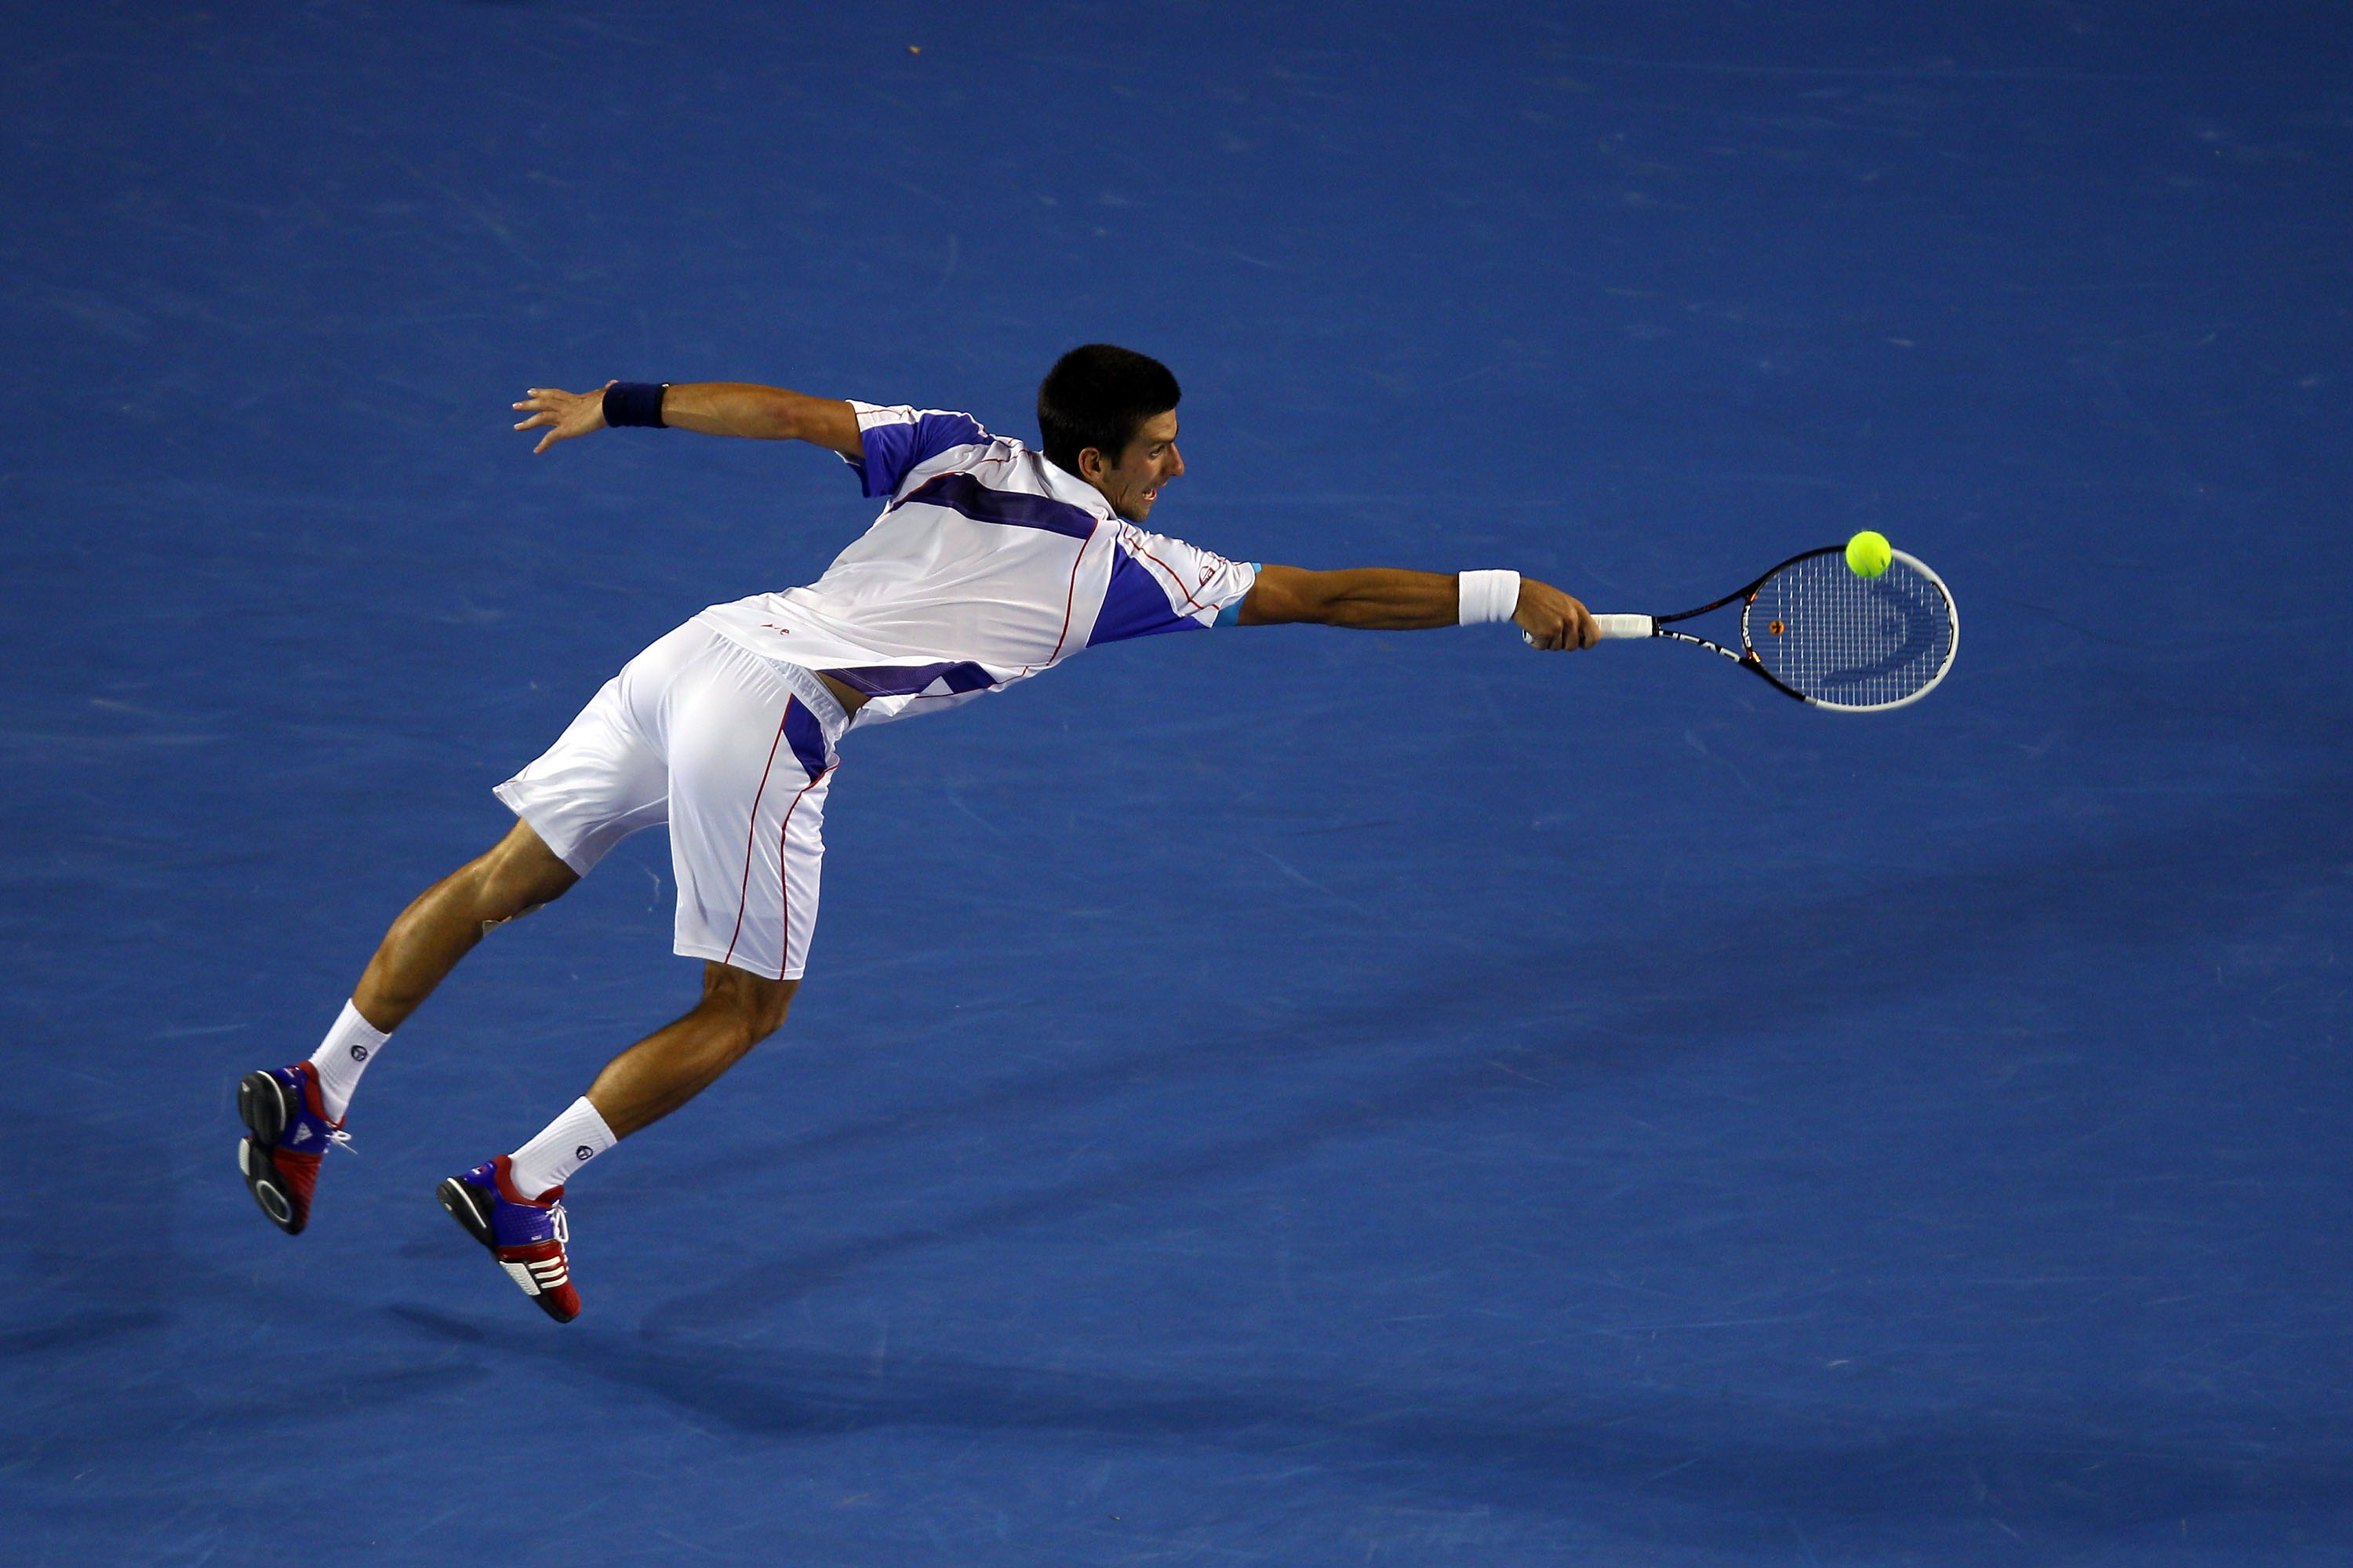 MELBOURNE, AUSTRALIA - JANUARY 30:  Novak Djokovic of Serbia plays a backhand in his men's final match against Andy Murray of Great Britain during day fourteen of the 2011 Australian Open at Melbourne Park on January 30, 2011 in Melbourne, Australia.  (Ph